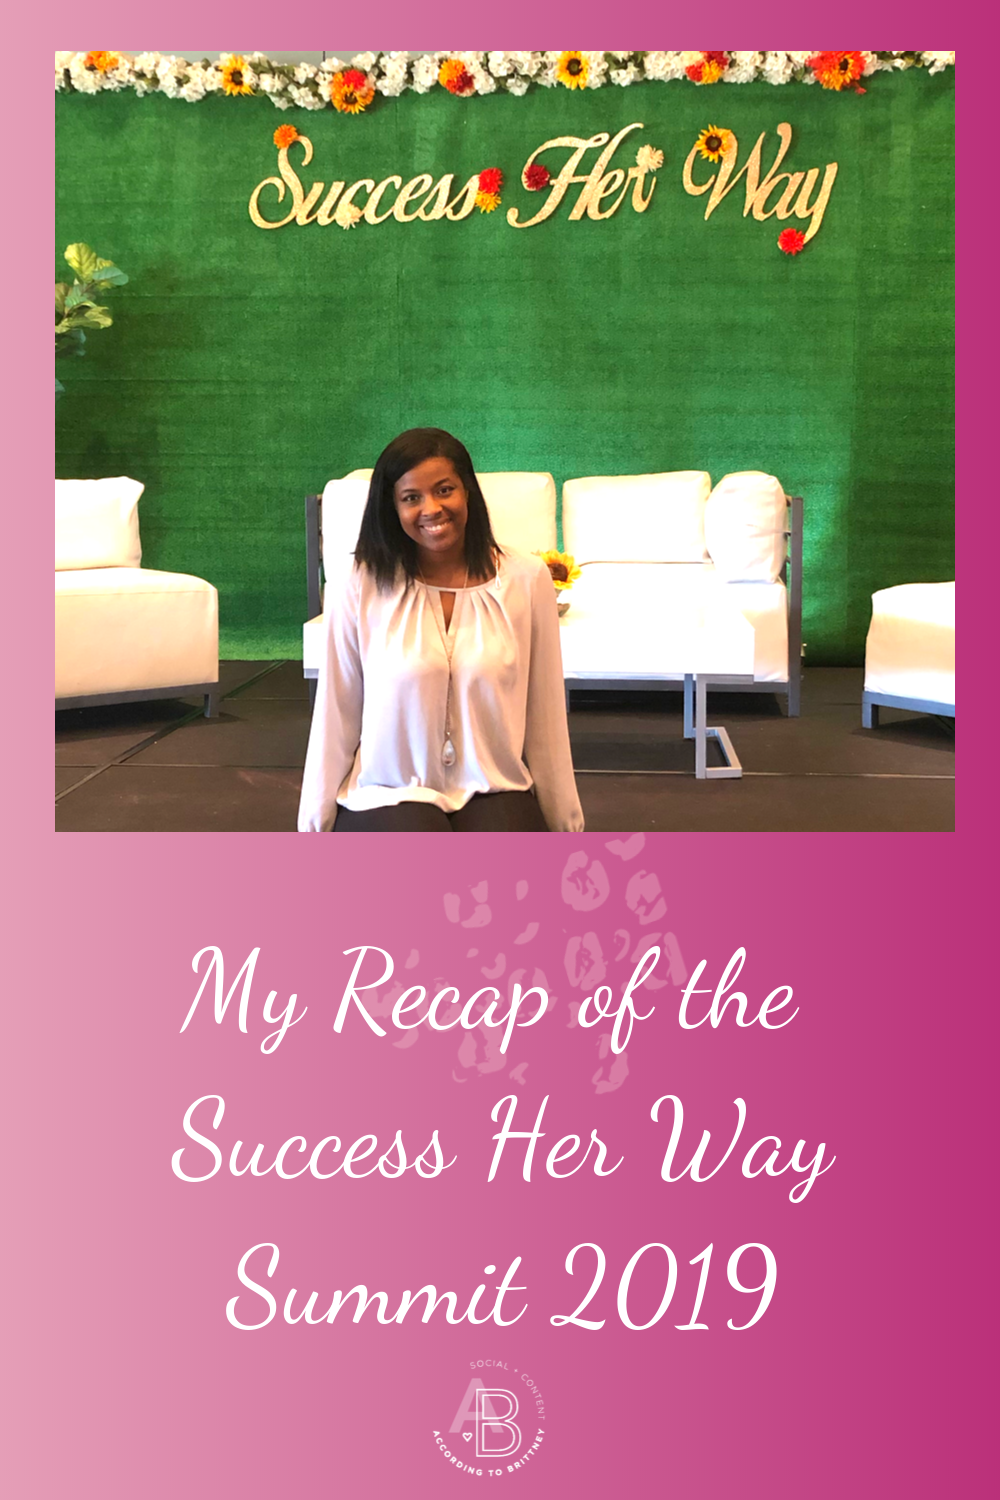 My Recap of the Success Her Way Summit 2019